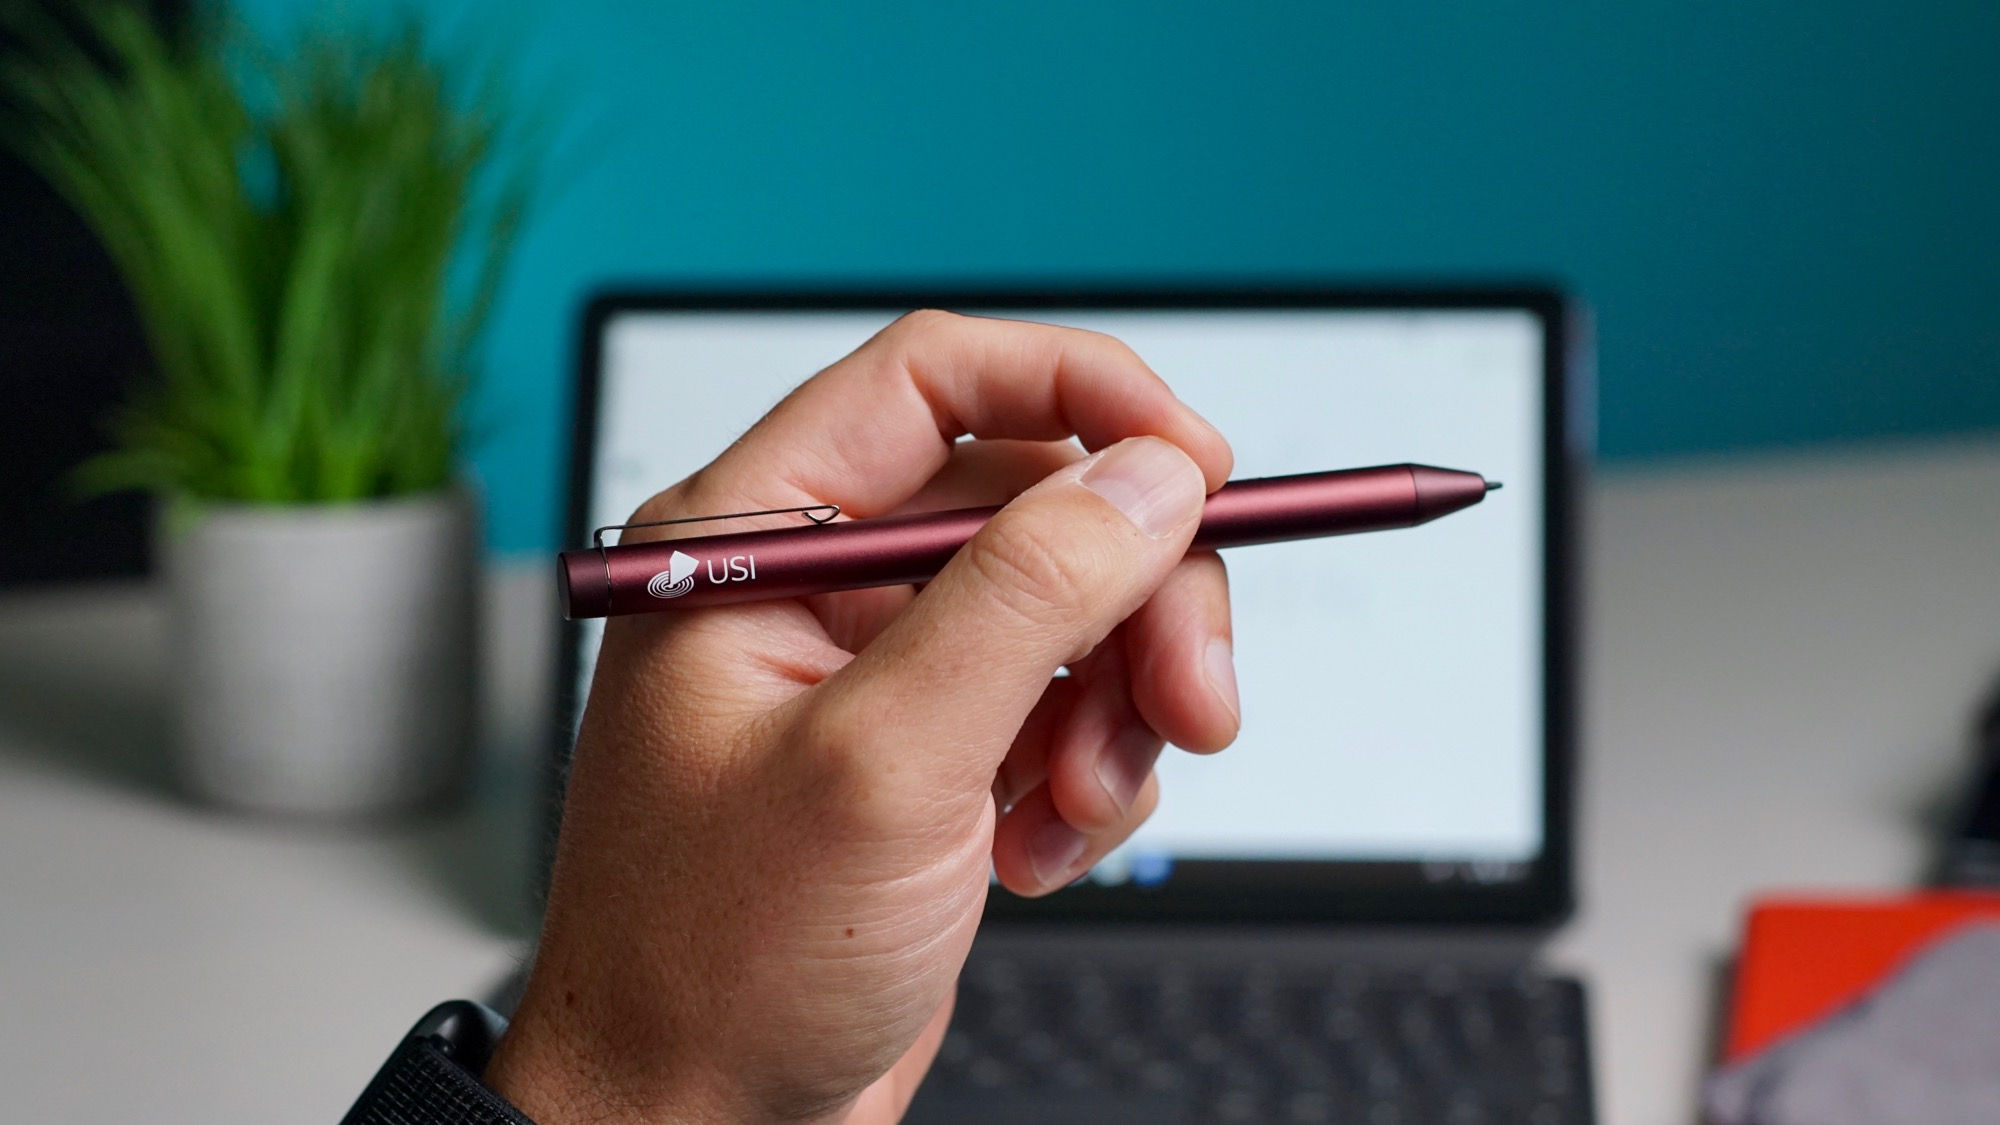 The USI stylus from iPlume is back in stock for $49